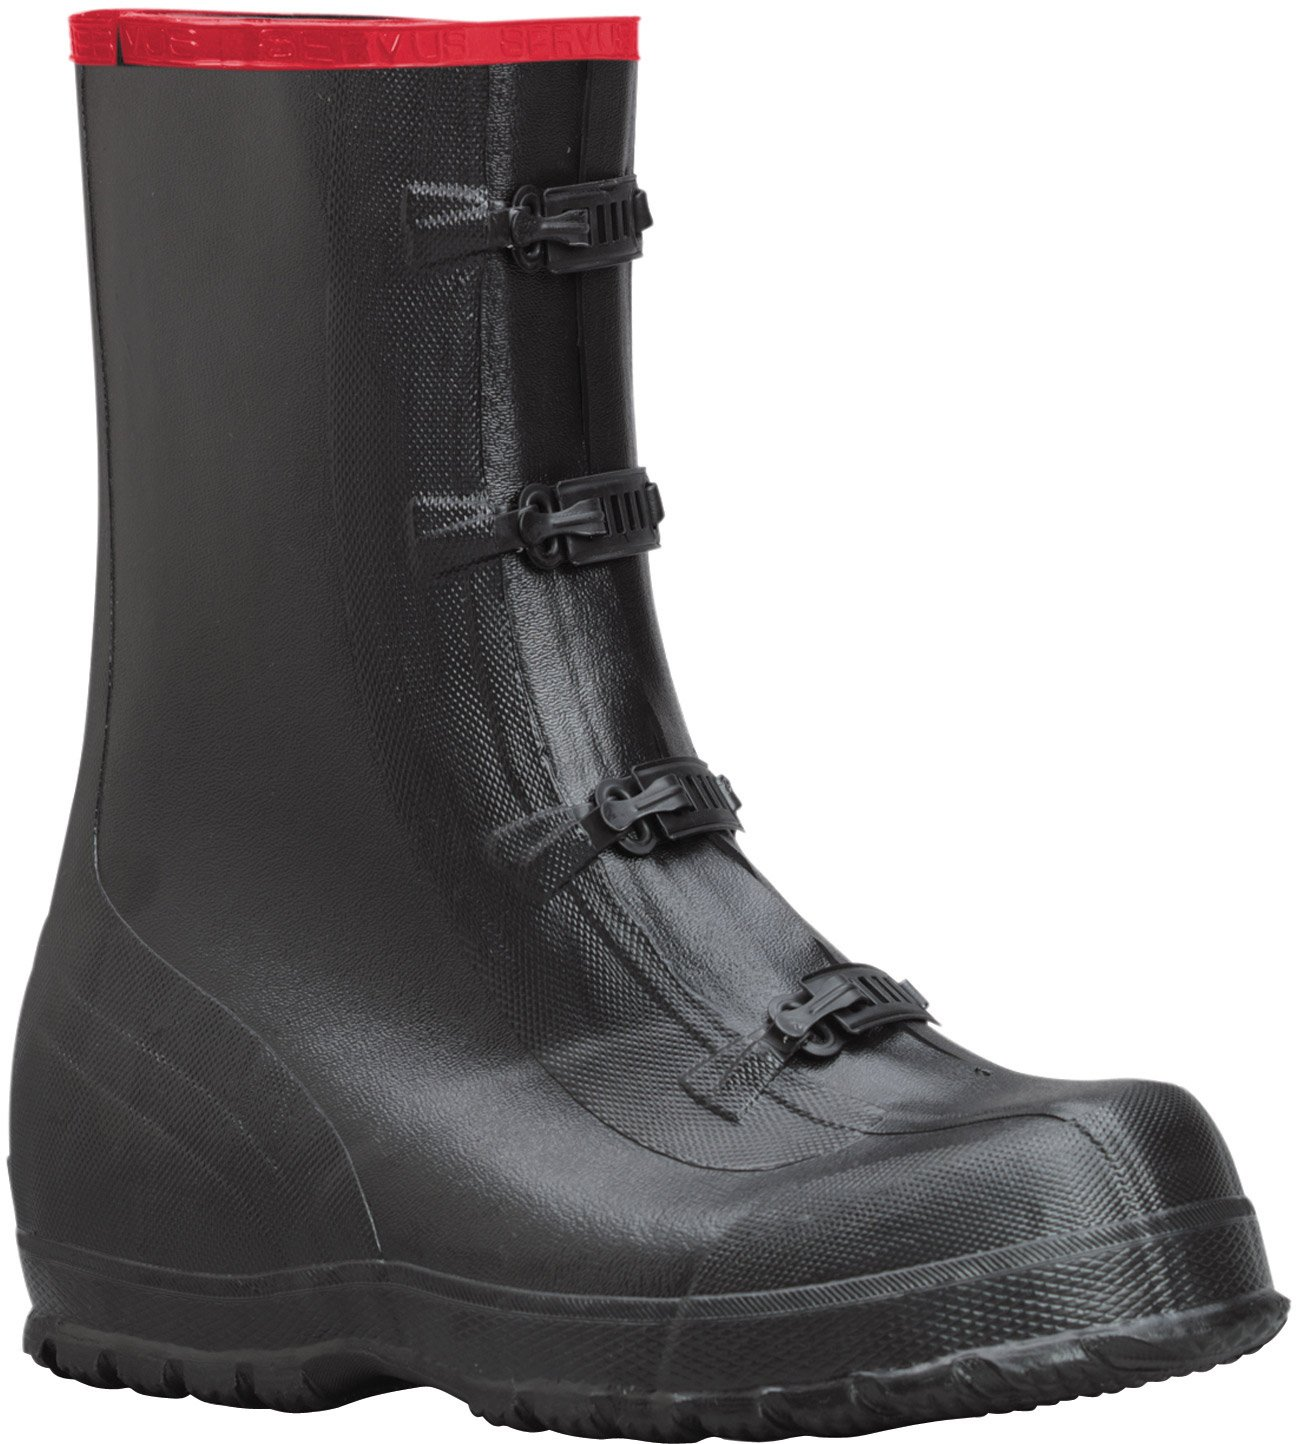 Ranger 13'' Rubber Supersized Men's Overboots, Black (T419) by Honeywell